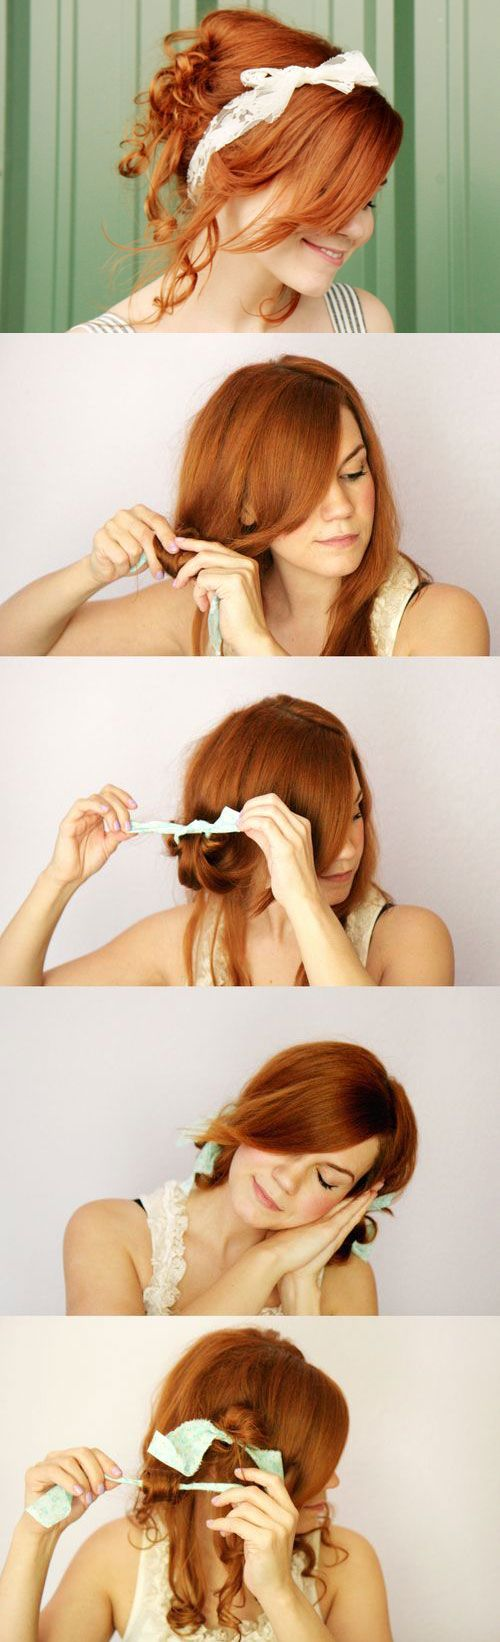 1000 Images About Coiffure On Pinterest Everyday Curls Cute